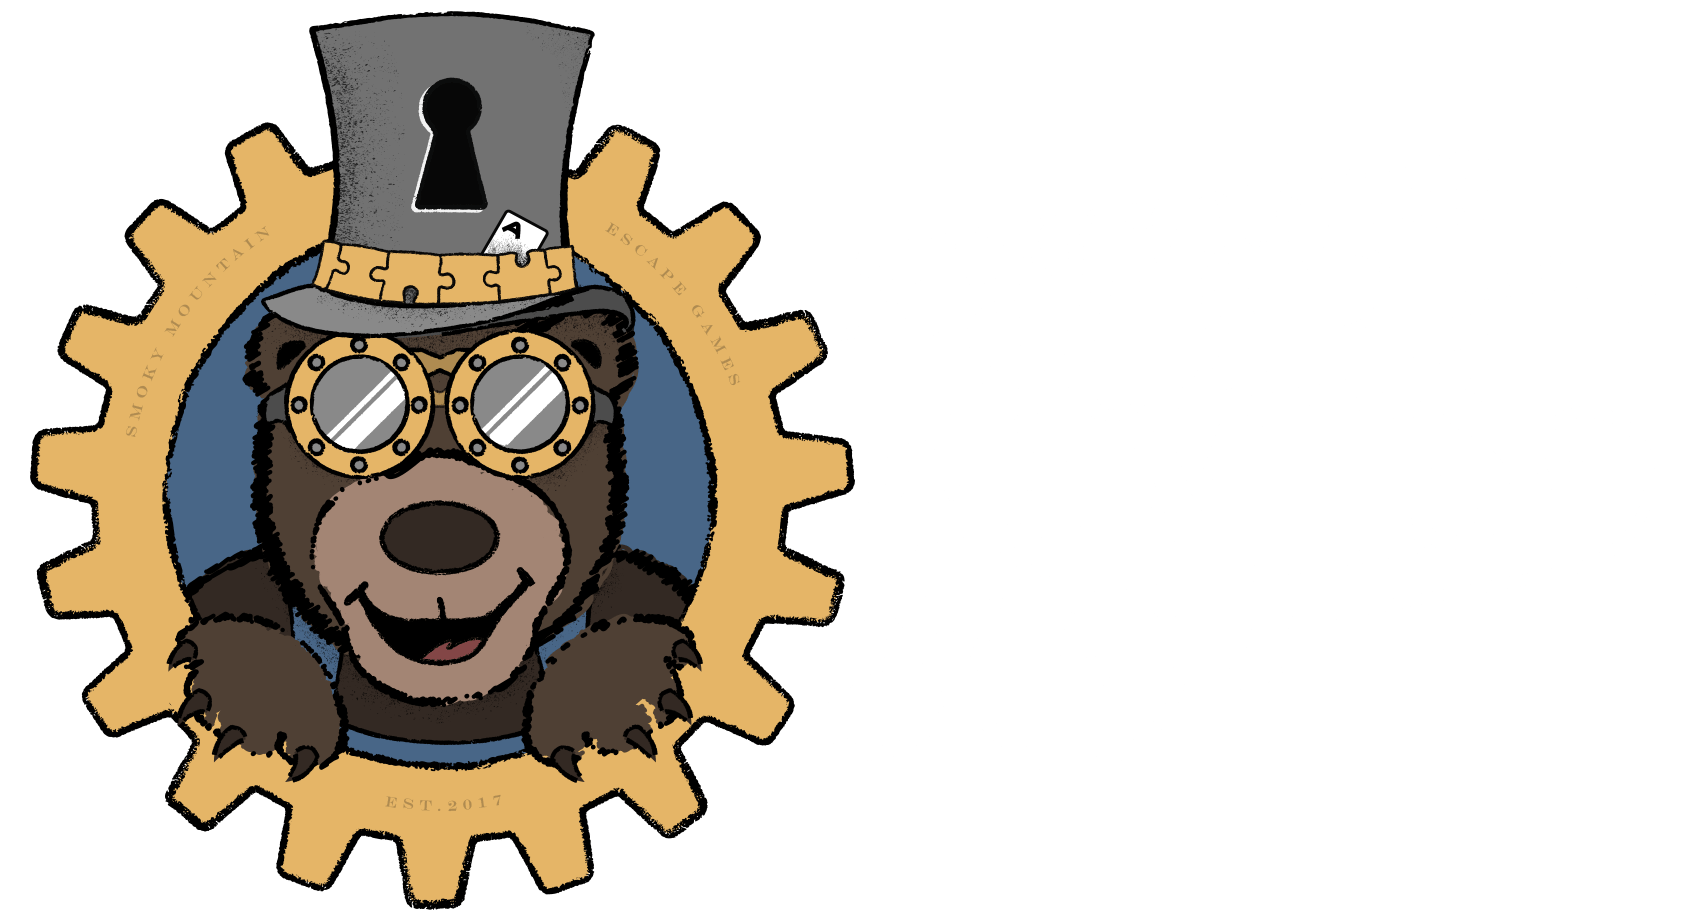 Games clipart game room. Smoky mountain escape frequently